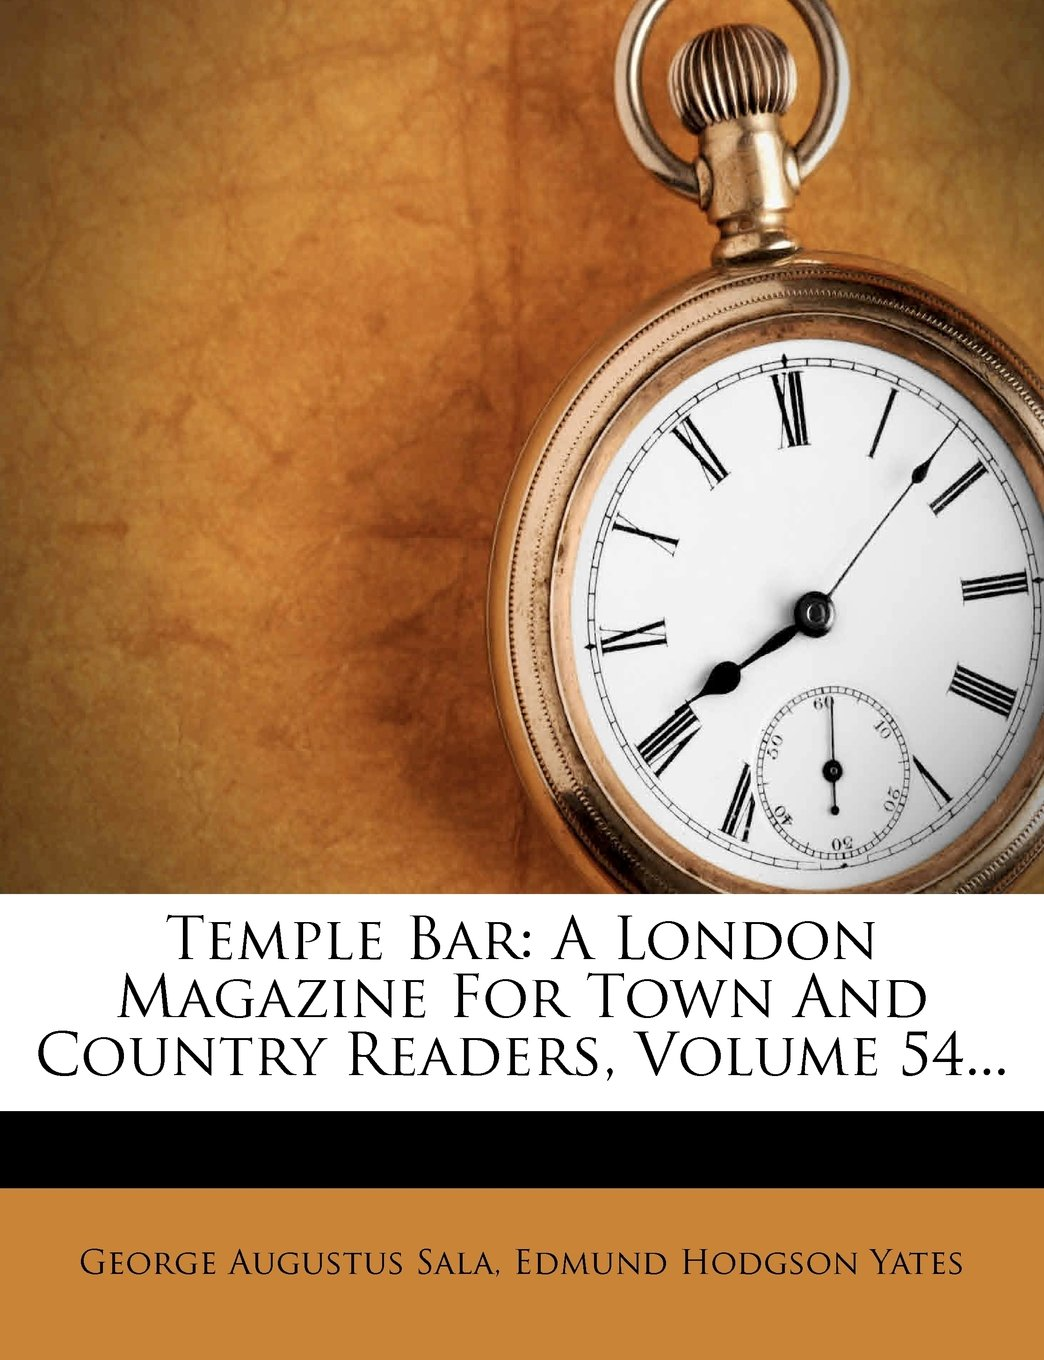 Temple Bar: A London Magazine For Town And Country Readers, Volume 54... pdf